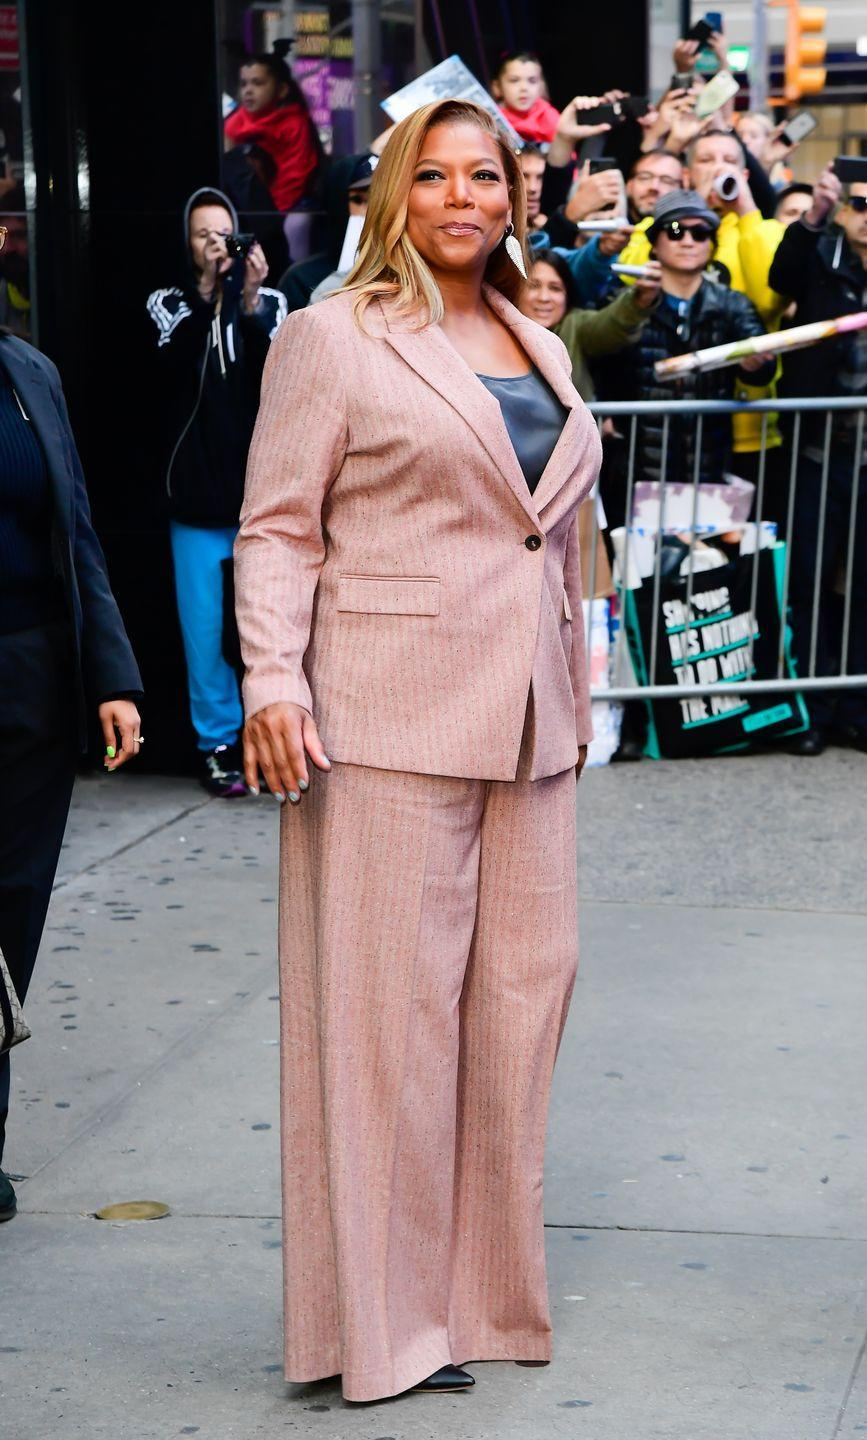 """<p>Queen Latifah says she has always struggled with her weight, but when she became a spokesperson for Jenny Craig, she ditched more than 20 pounds. In a 2010 interview with <em><a href=""""https://people.com/style/queen-latifah-on-staying-fit-fabulous-and-philanthropic-at-almost-40/"""" rel=""""nofollow noopener"""" target=""""_blank"""" data-ylk=""""slk:People"""" class=""""link rapid-noclick-resp"""">People</a></em>, the <em>Girls Trip </em>star said, """"I don't really diet. I kind of keep everything in moderation, exercise, and eat right. I eat a lot of vegetables and lean meats, and I drink a whole lot of water.""""<br></p>"""